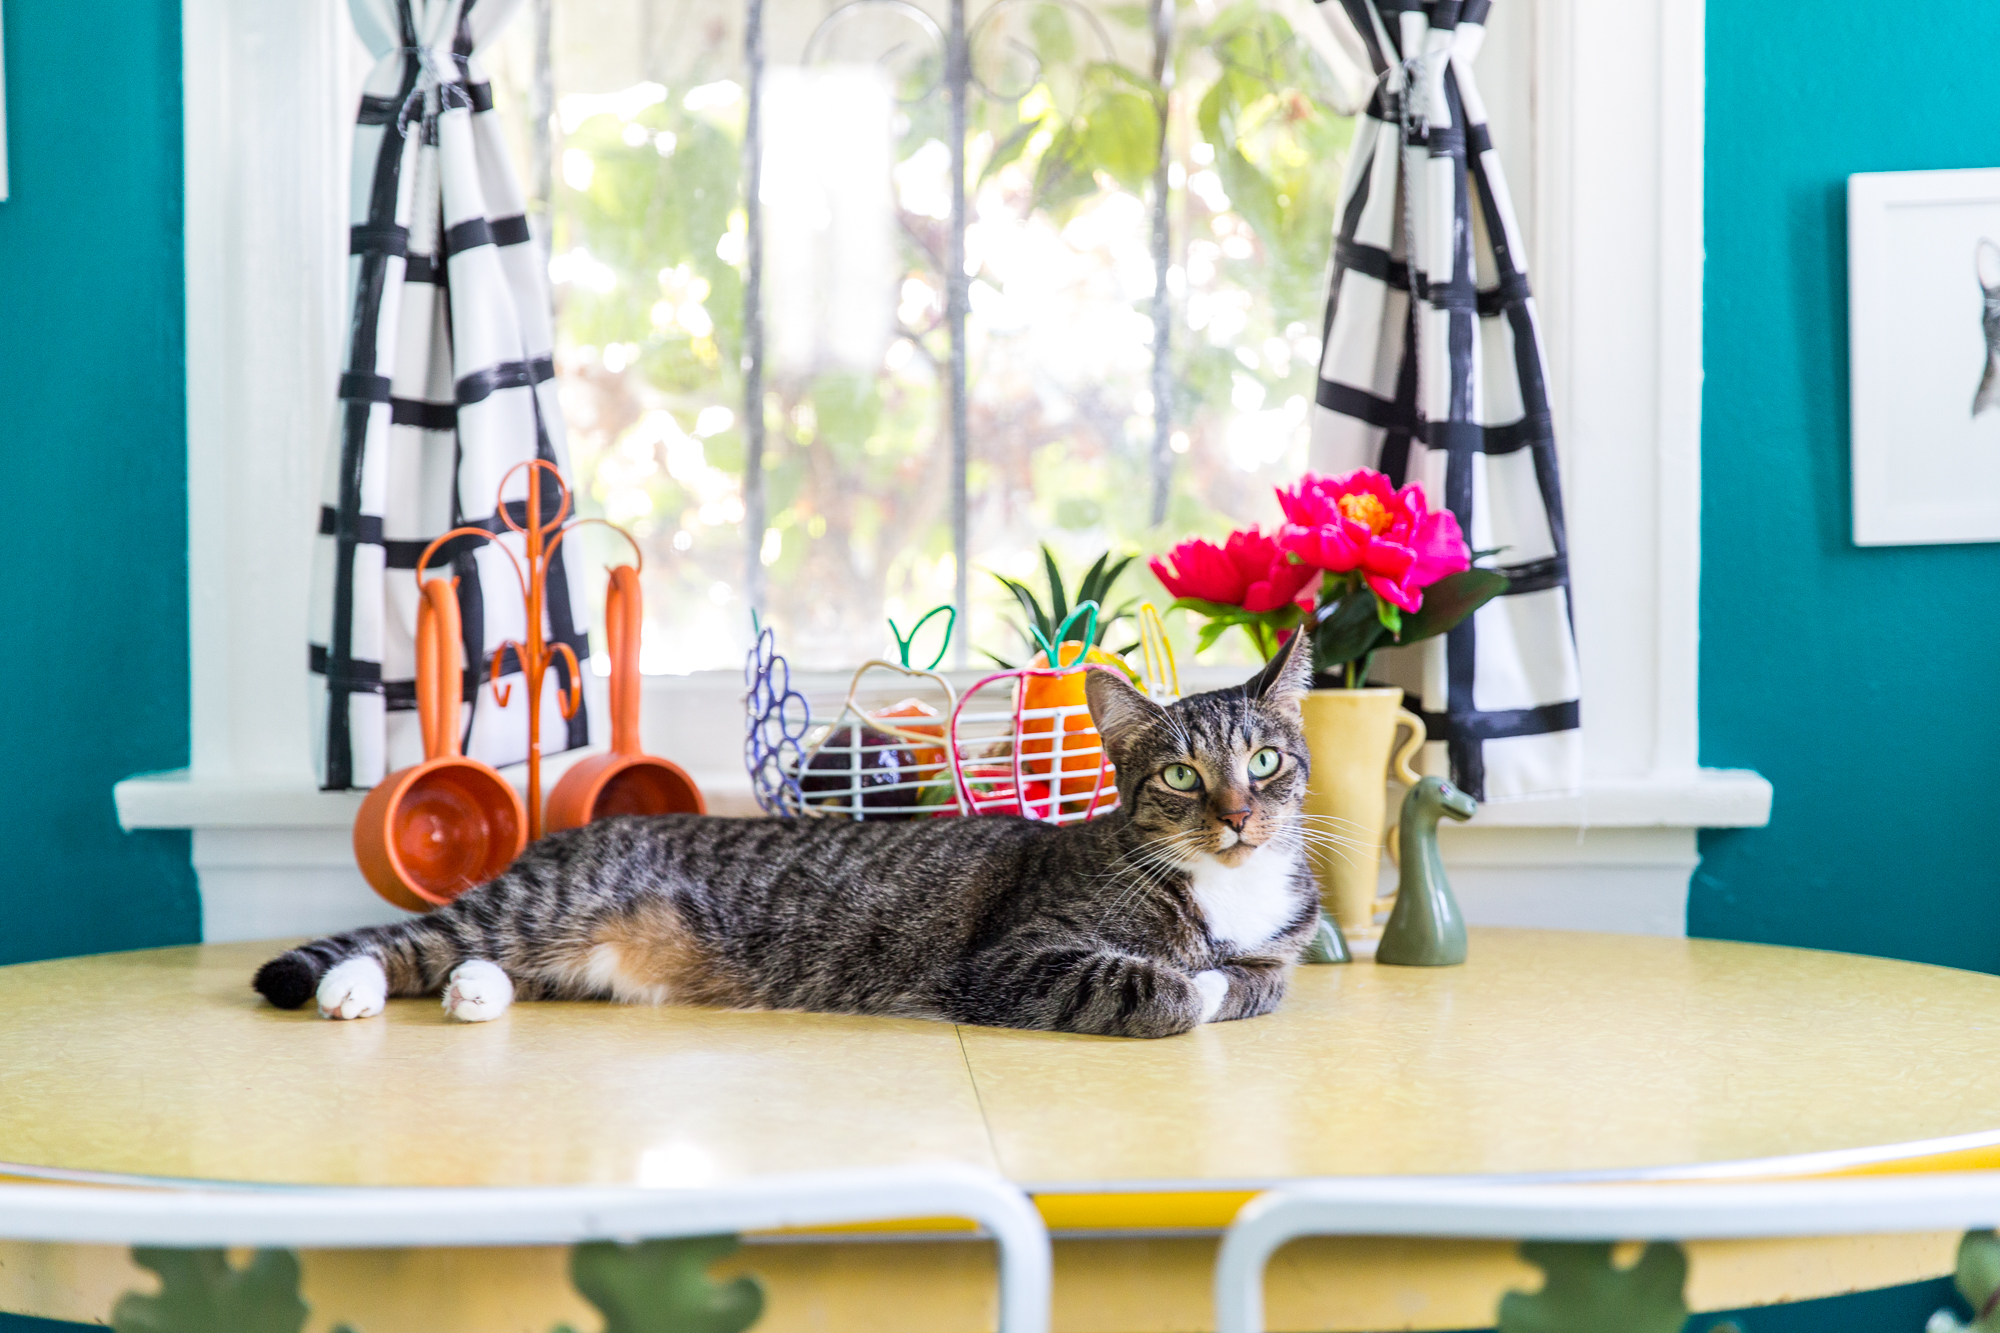 Marvelous Jackson Galaxy On Keeping Your Cats Off The Counters Kitchn Interior Design Ideas Gentotthenellocom